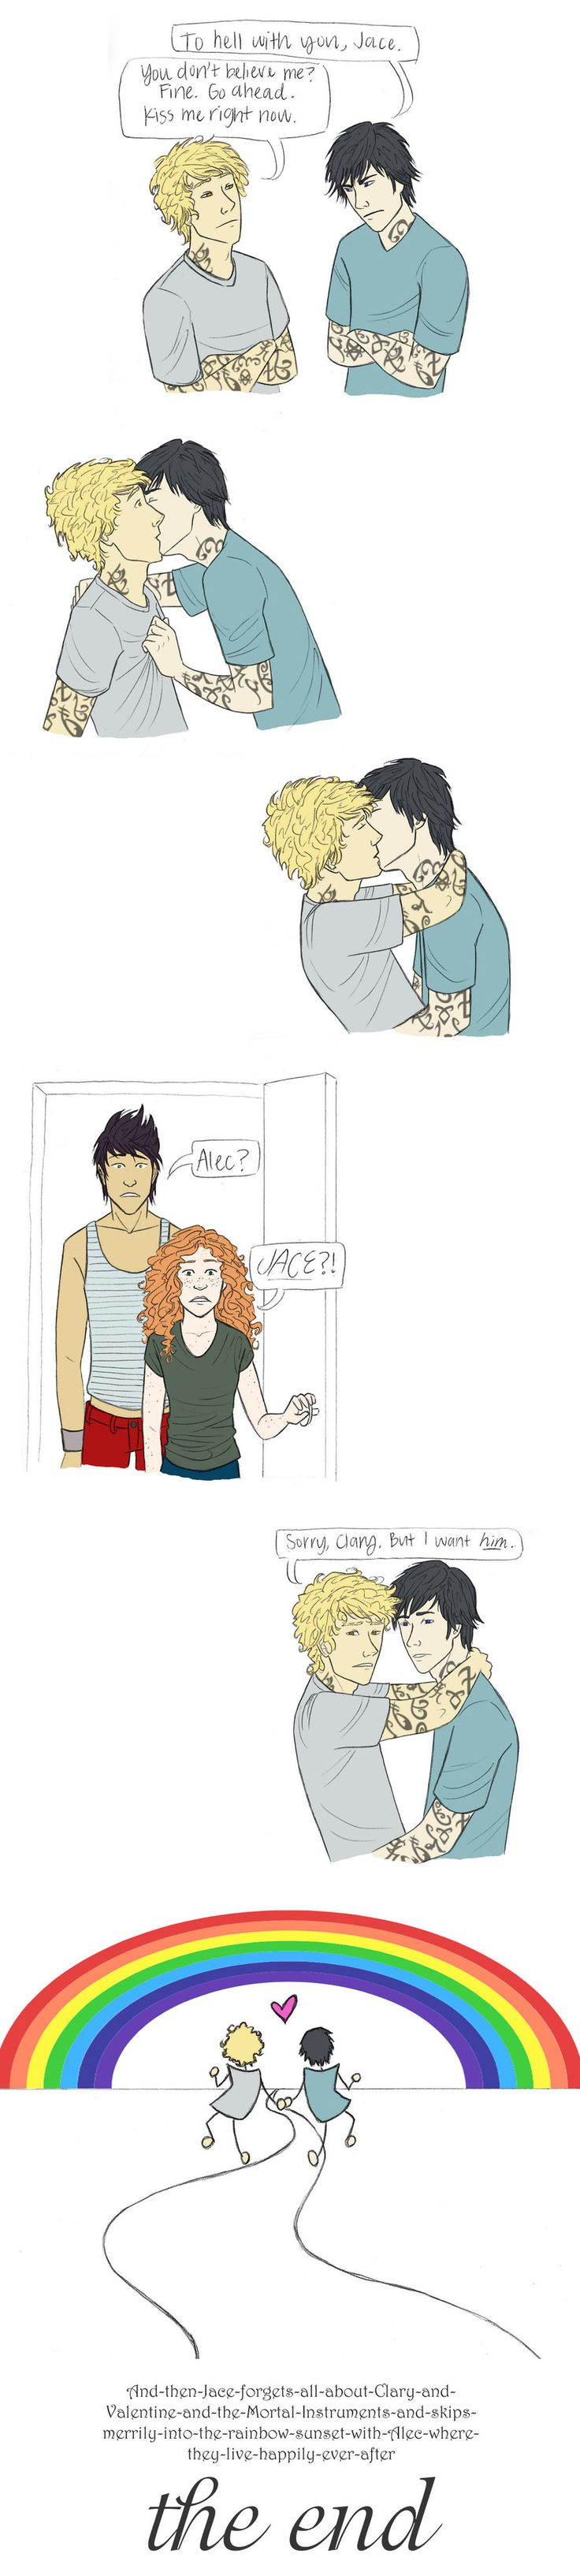 Talk about an experiment gone wrong!  Drawn by achelseabee ...  alexander 'alec' lightwood, clarissa 'clary' fray, comic, jace herondale, magnus bane, the mortal instruments